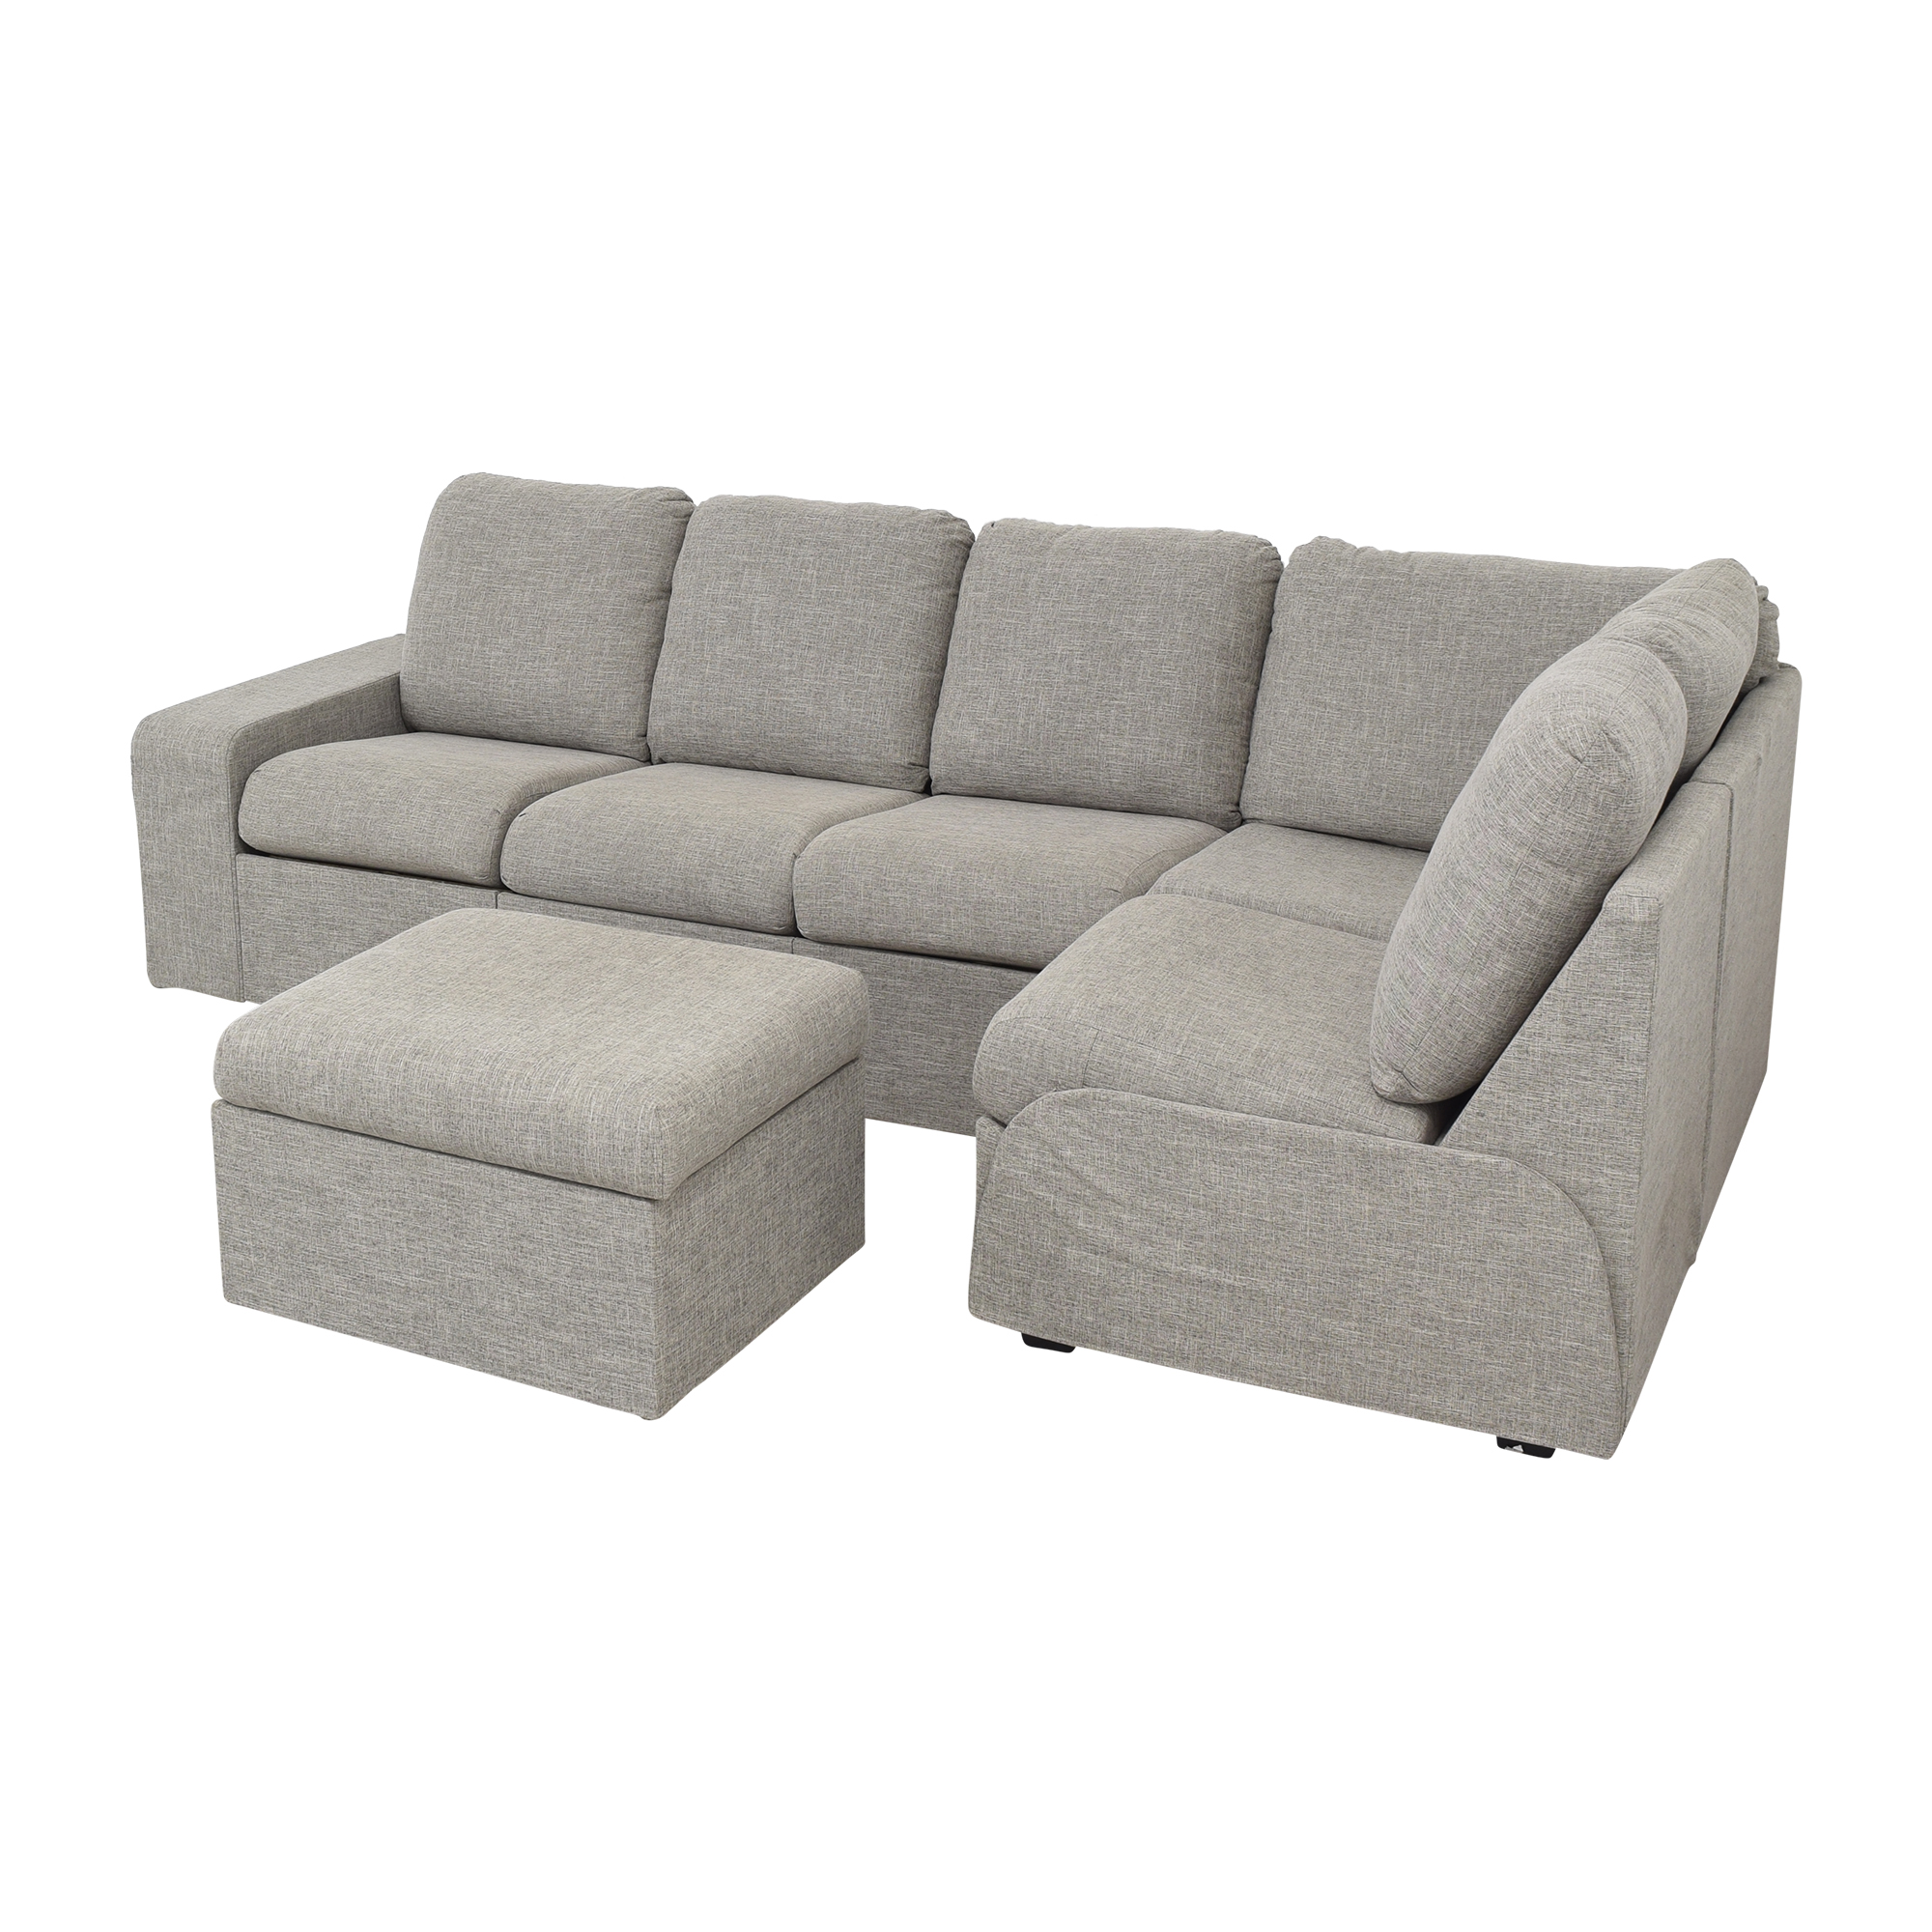 Home Reserve Home Reserve Jovie Sectional with Ottoman price